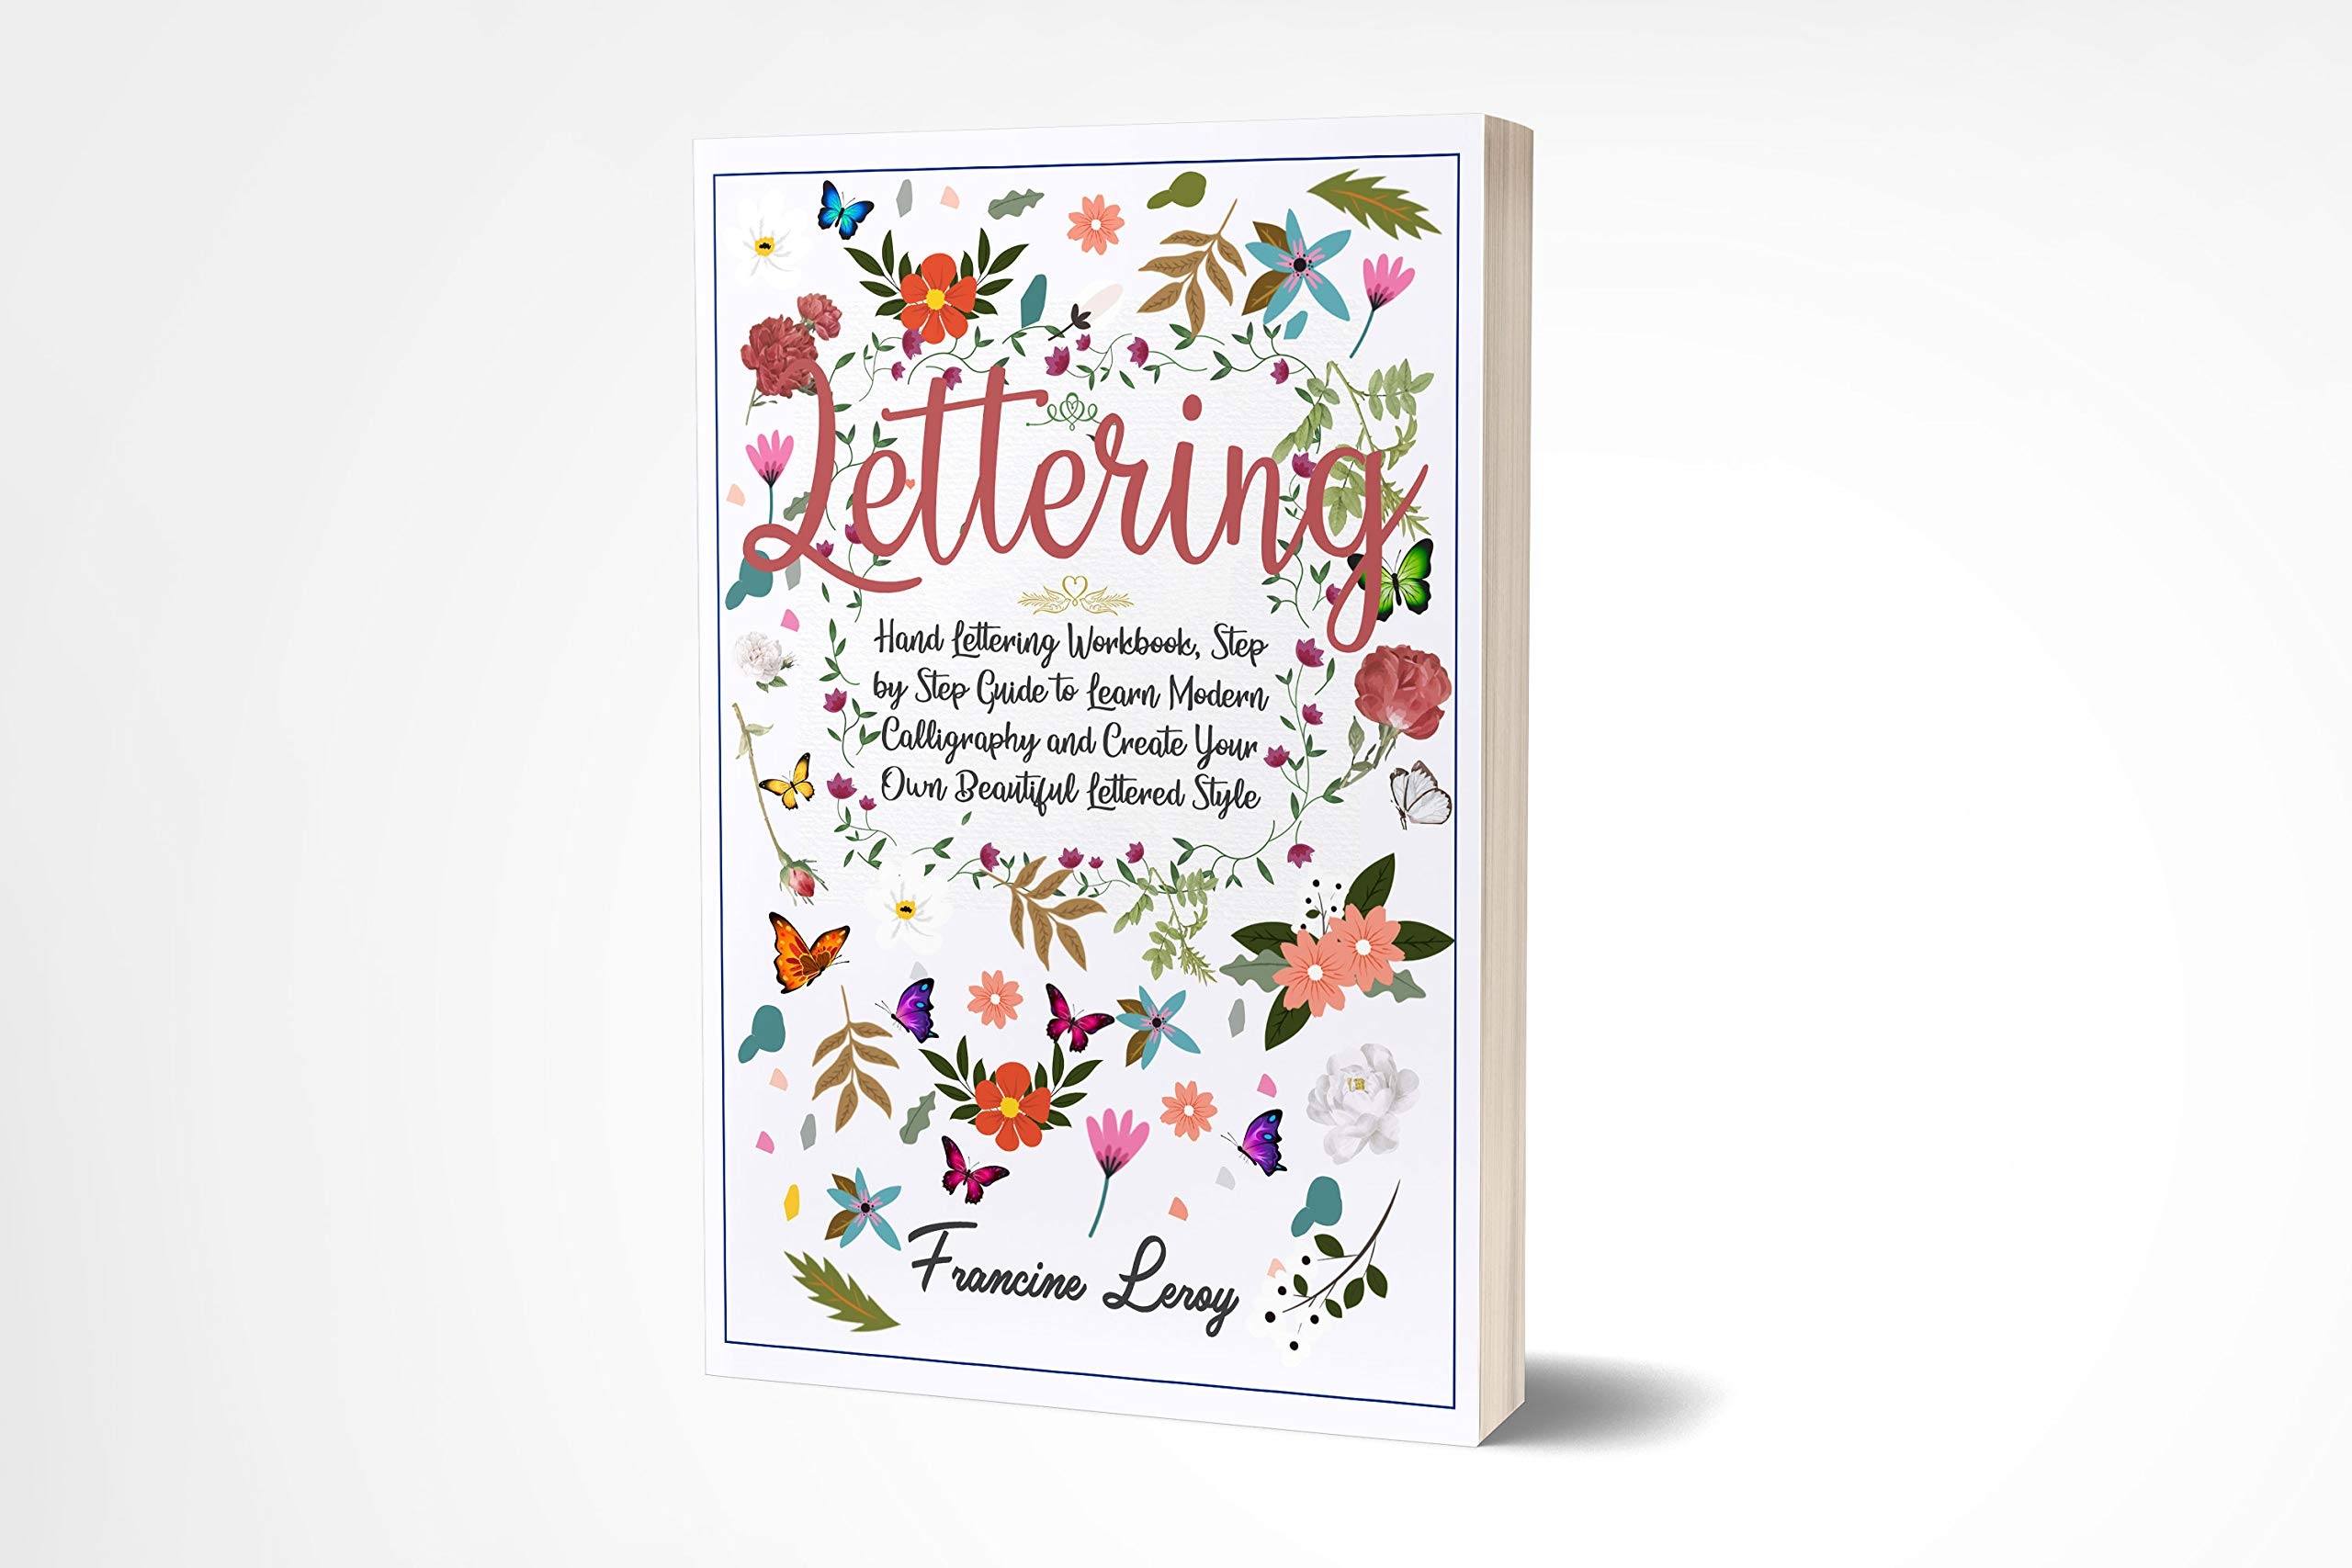 Lettering: Hand Lettering Workbook, Step by Step Guide to Modern Calligraphy and Create Your Own Beautiful Lettered Style